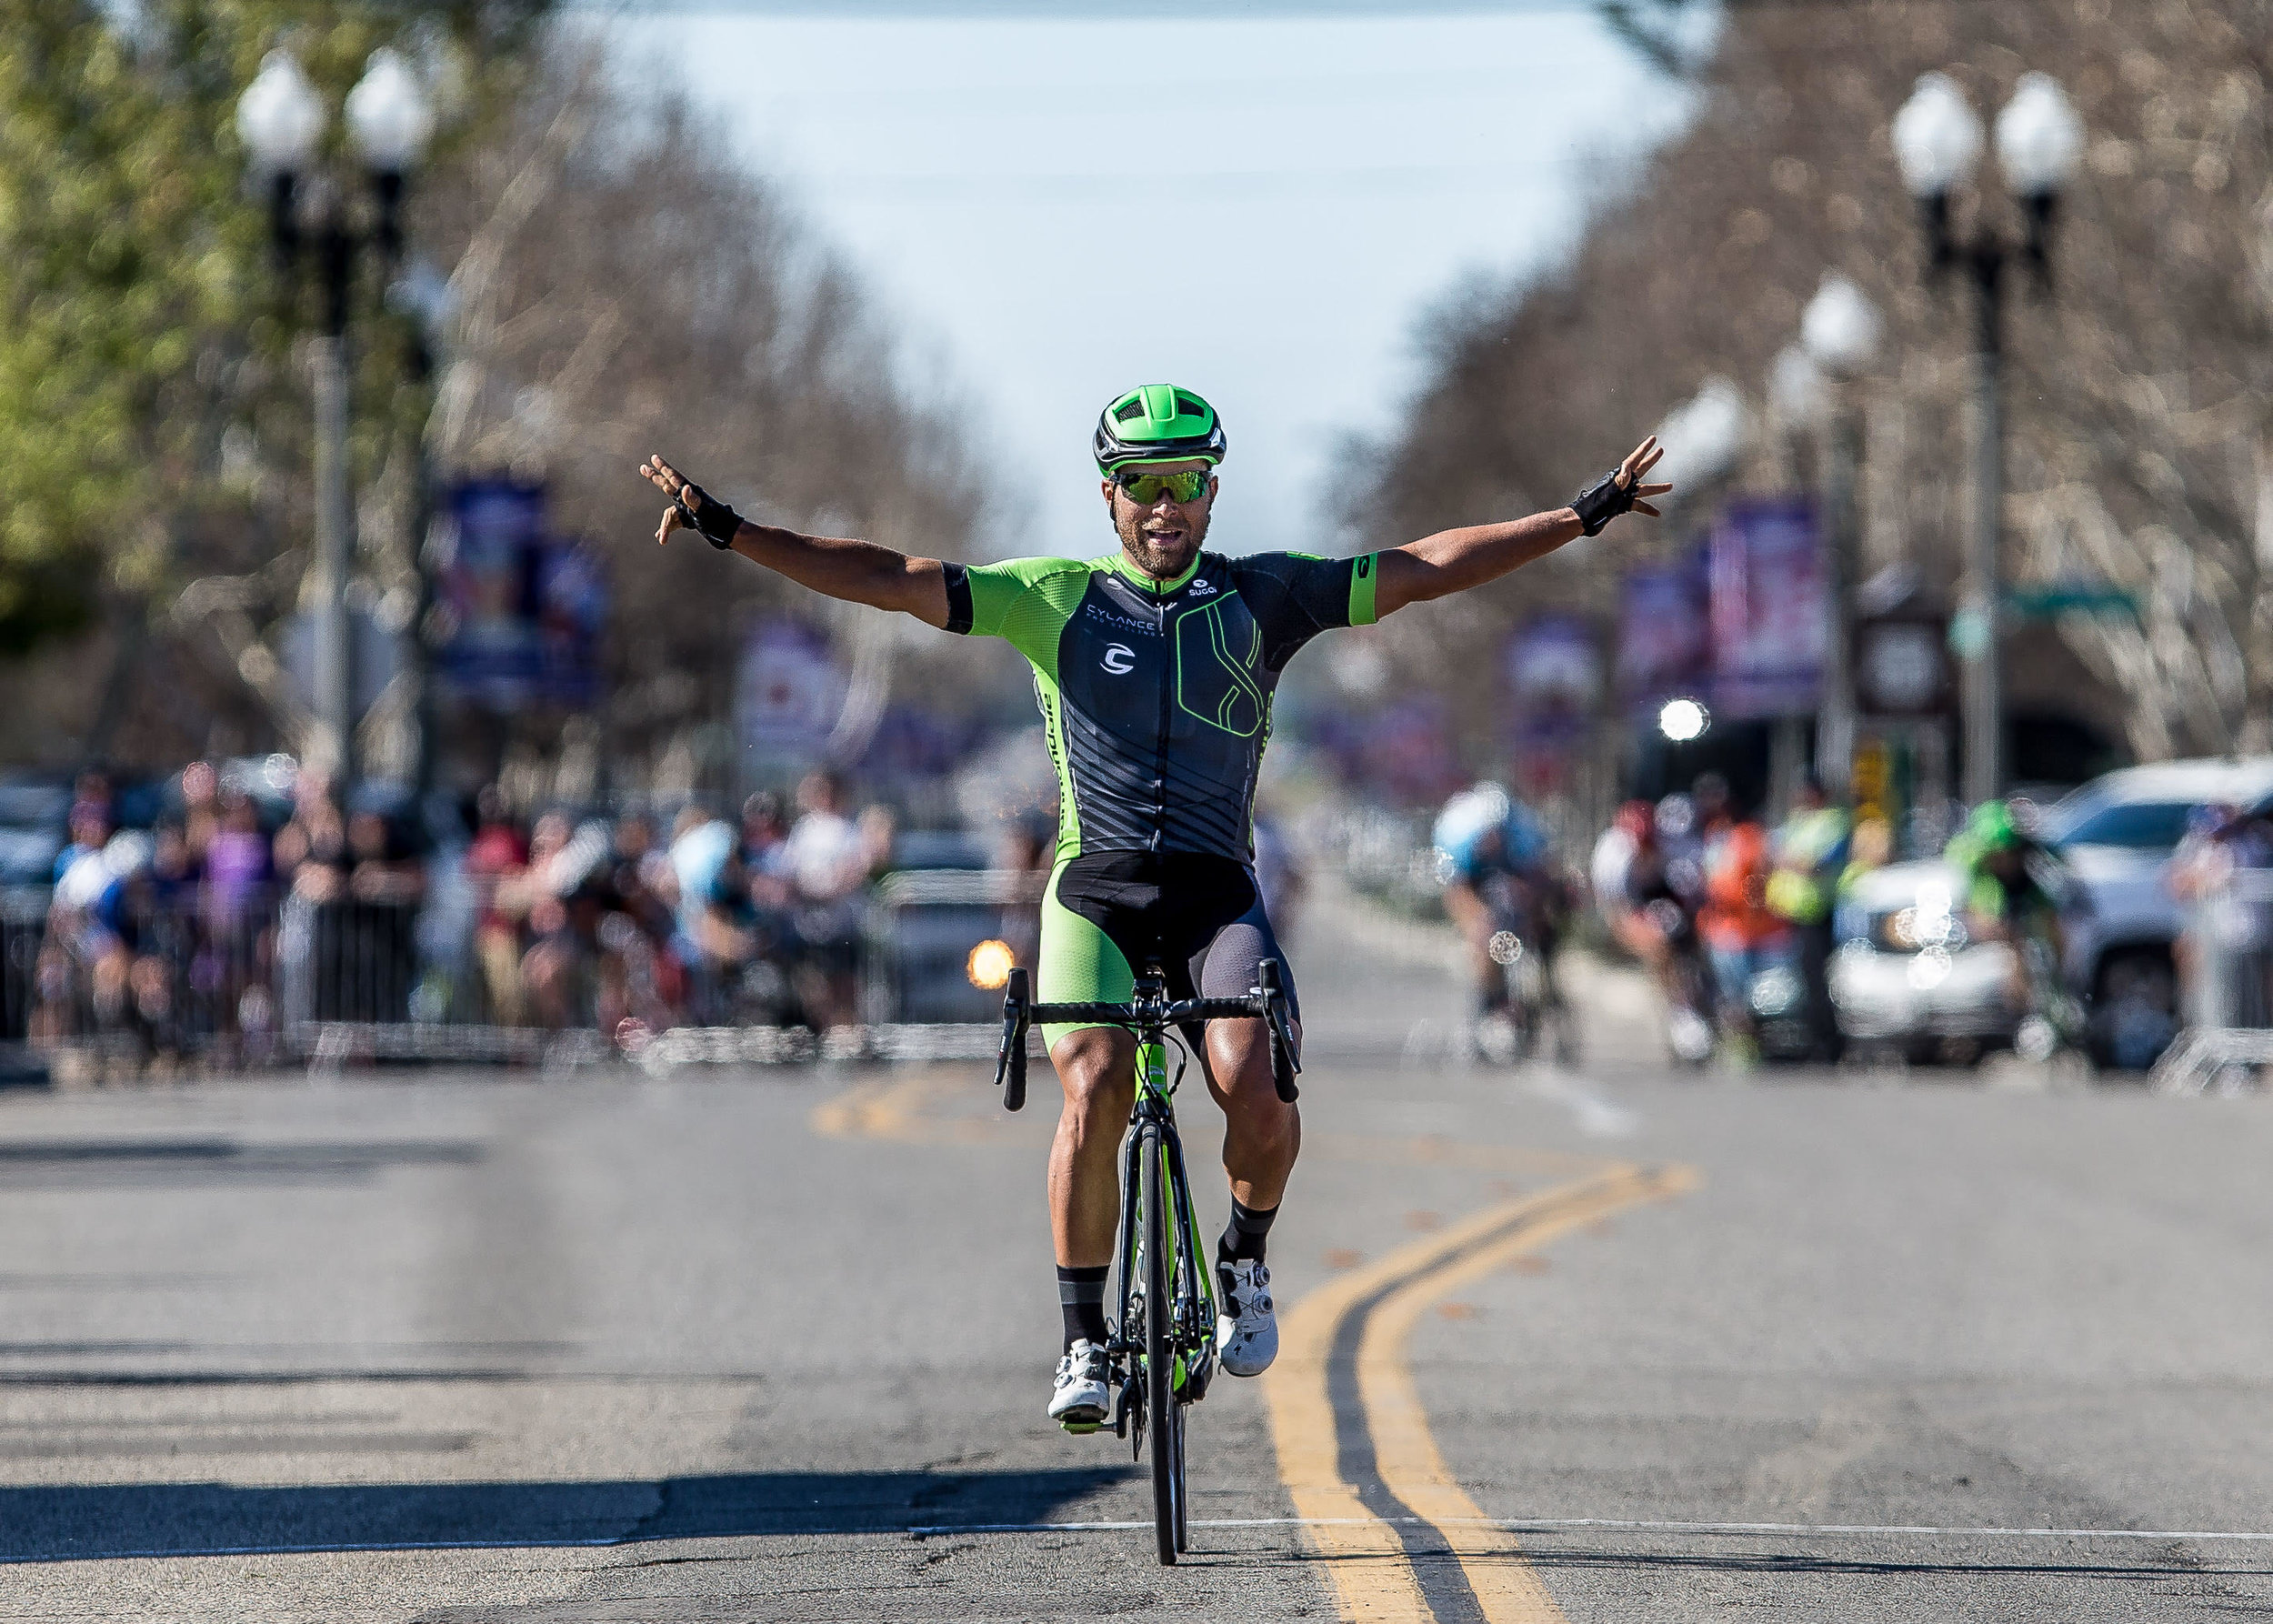 Eric Marcotte wins Stage 3 of Tour de Murrieta | Photo: Dan Munson dmunsonphoto.com